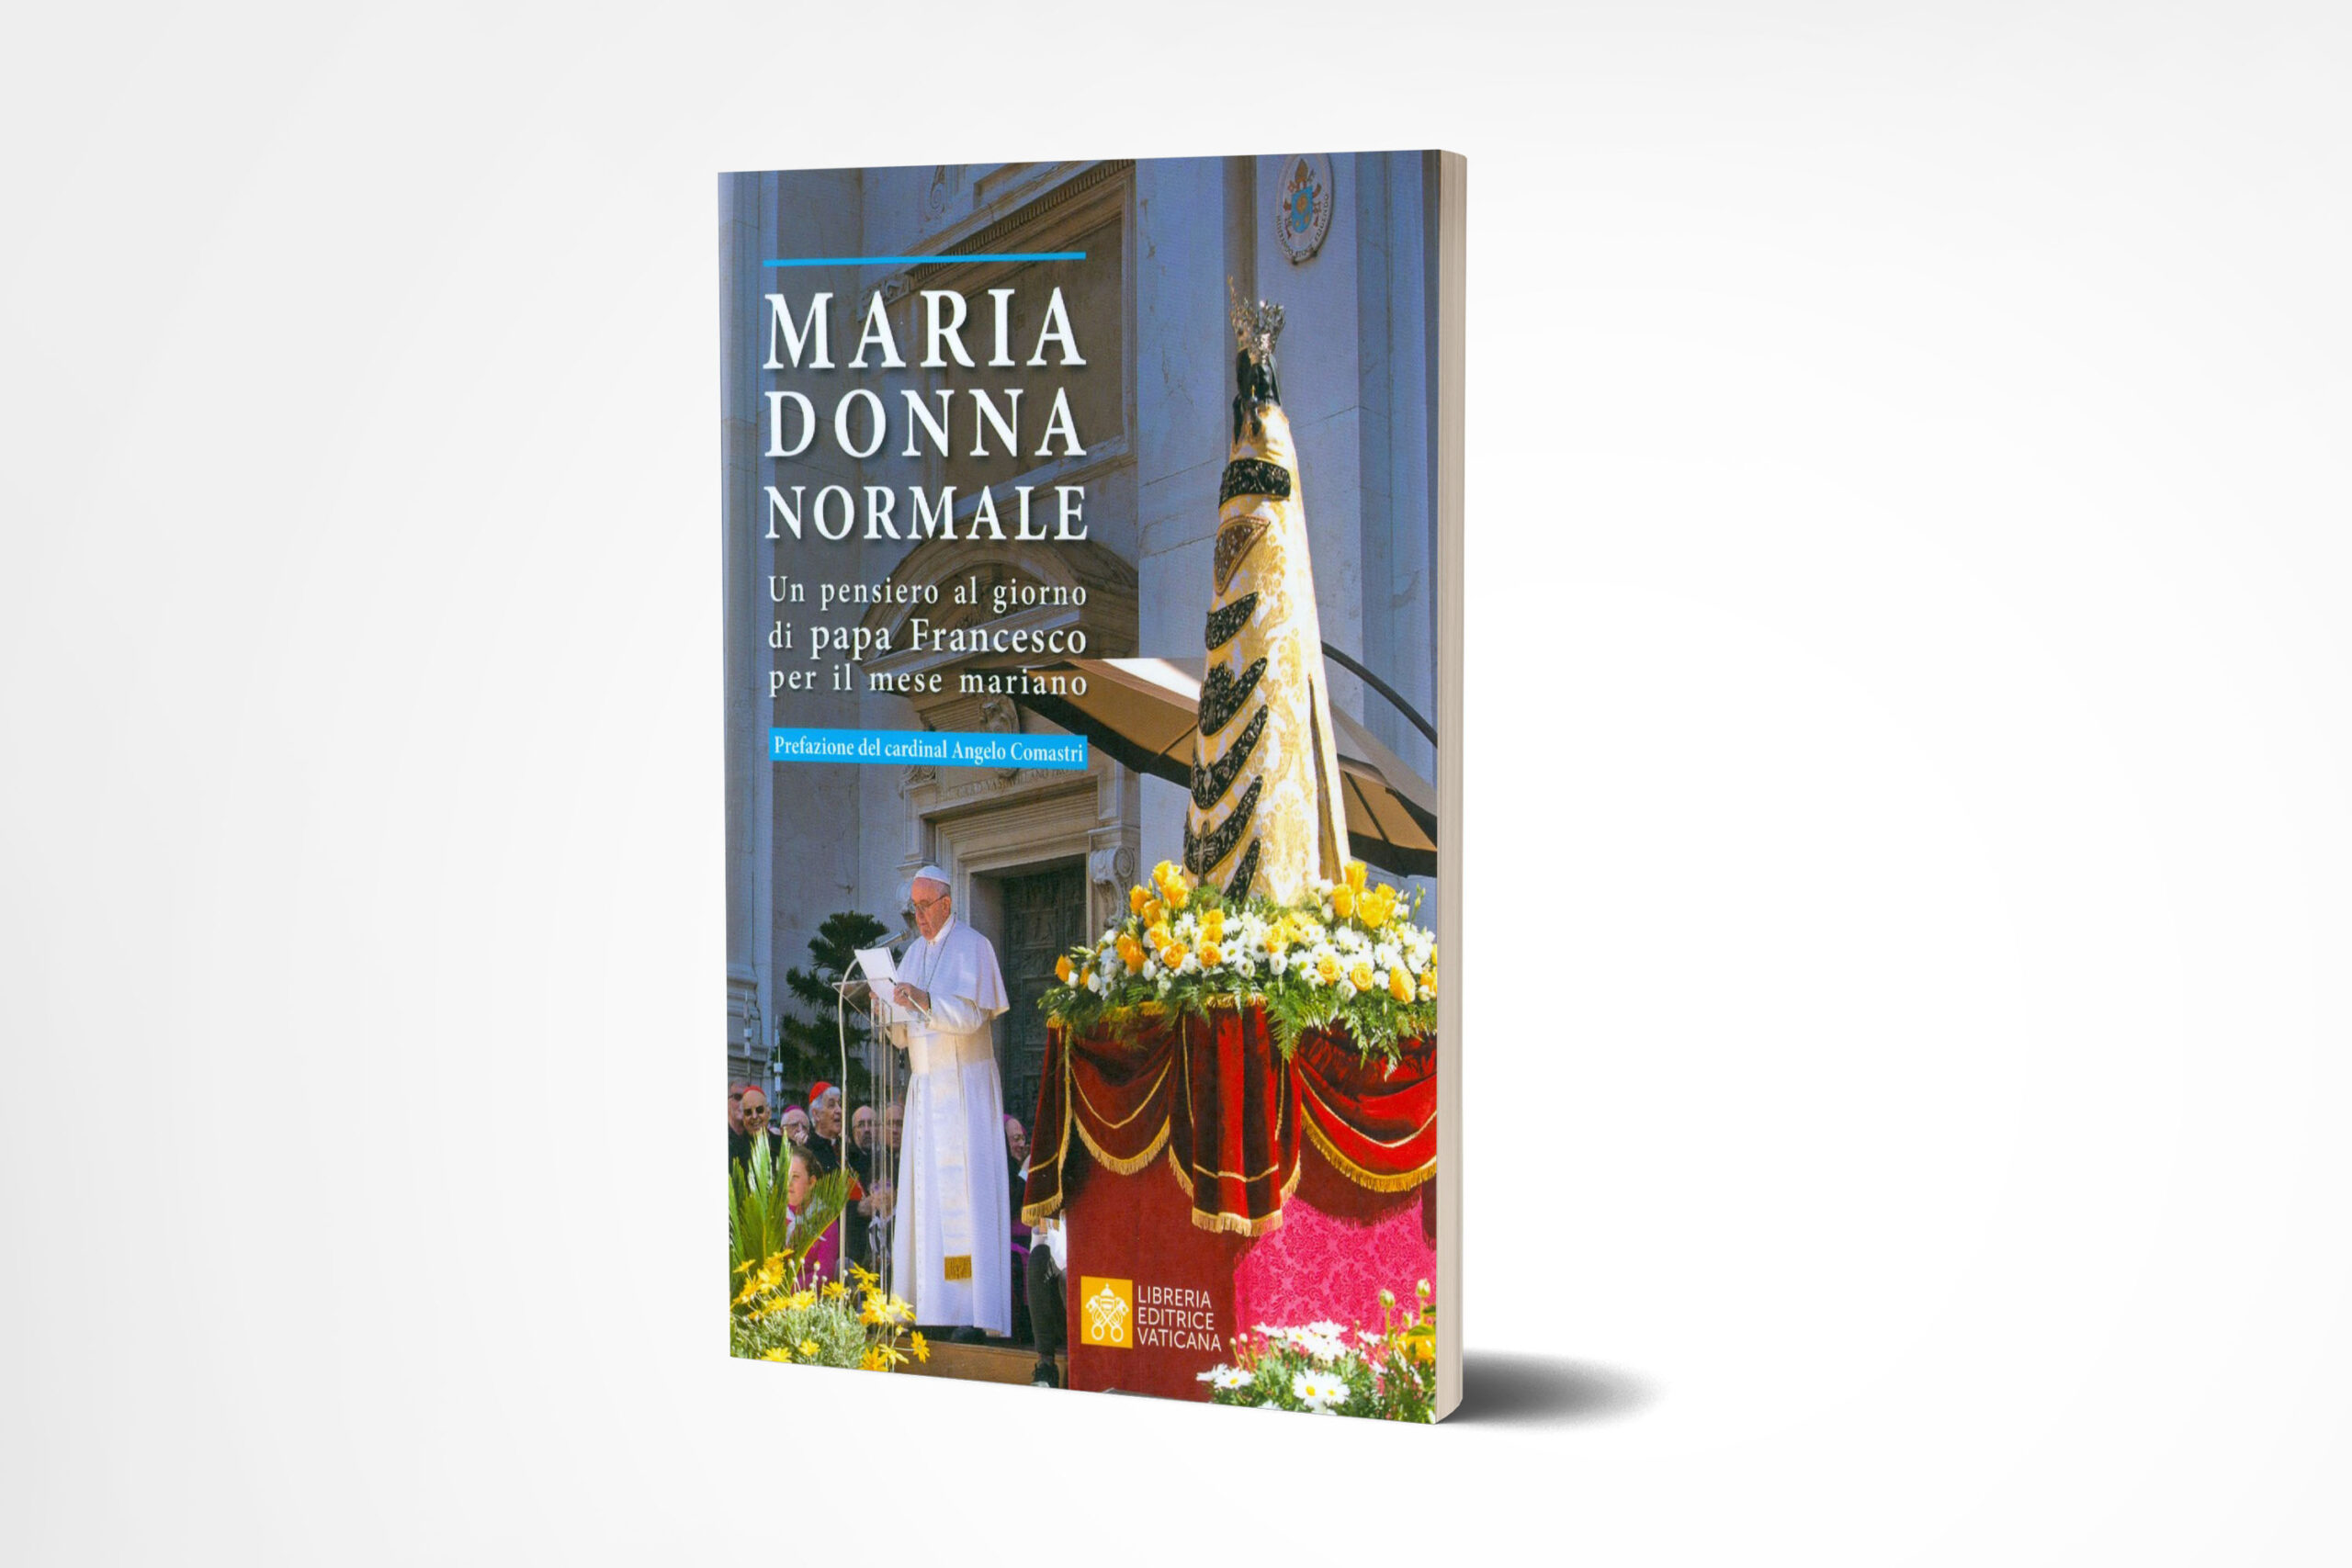 Maria donna normale